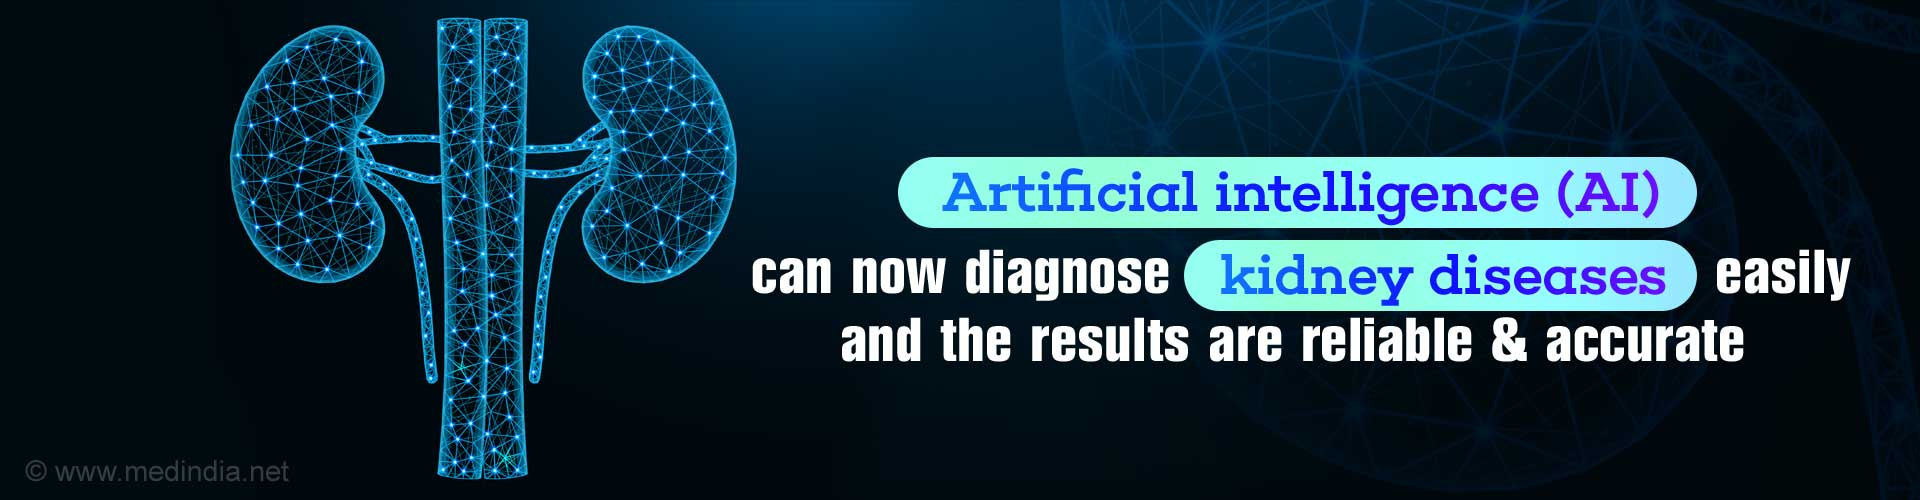 Kidney Diseases Can Now Easily Diagnosed Using Artificial Intelligence